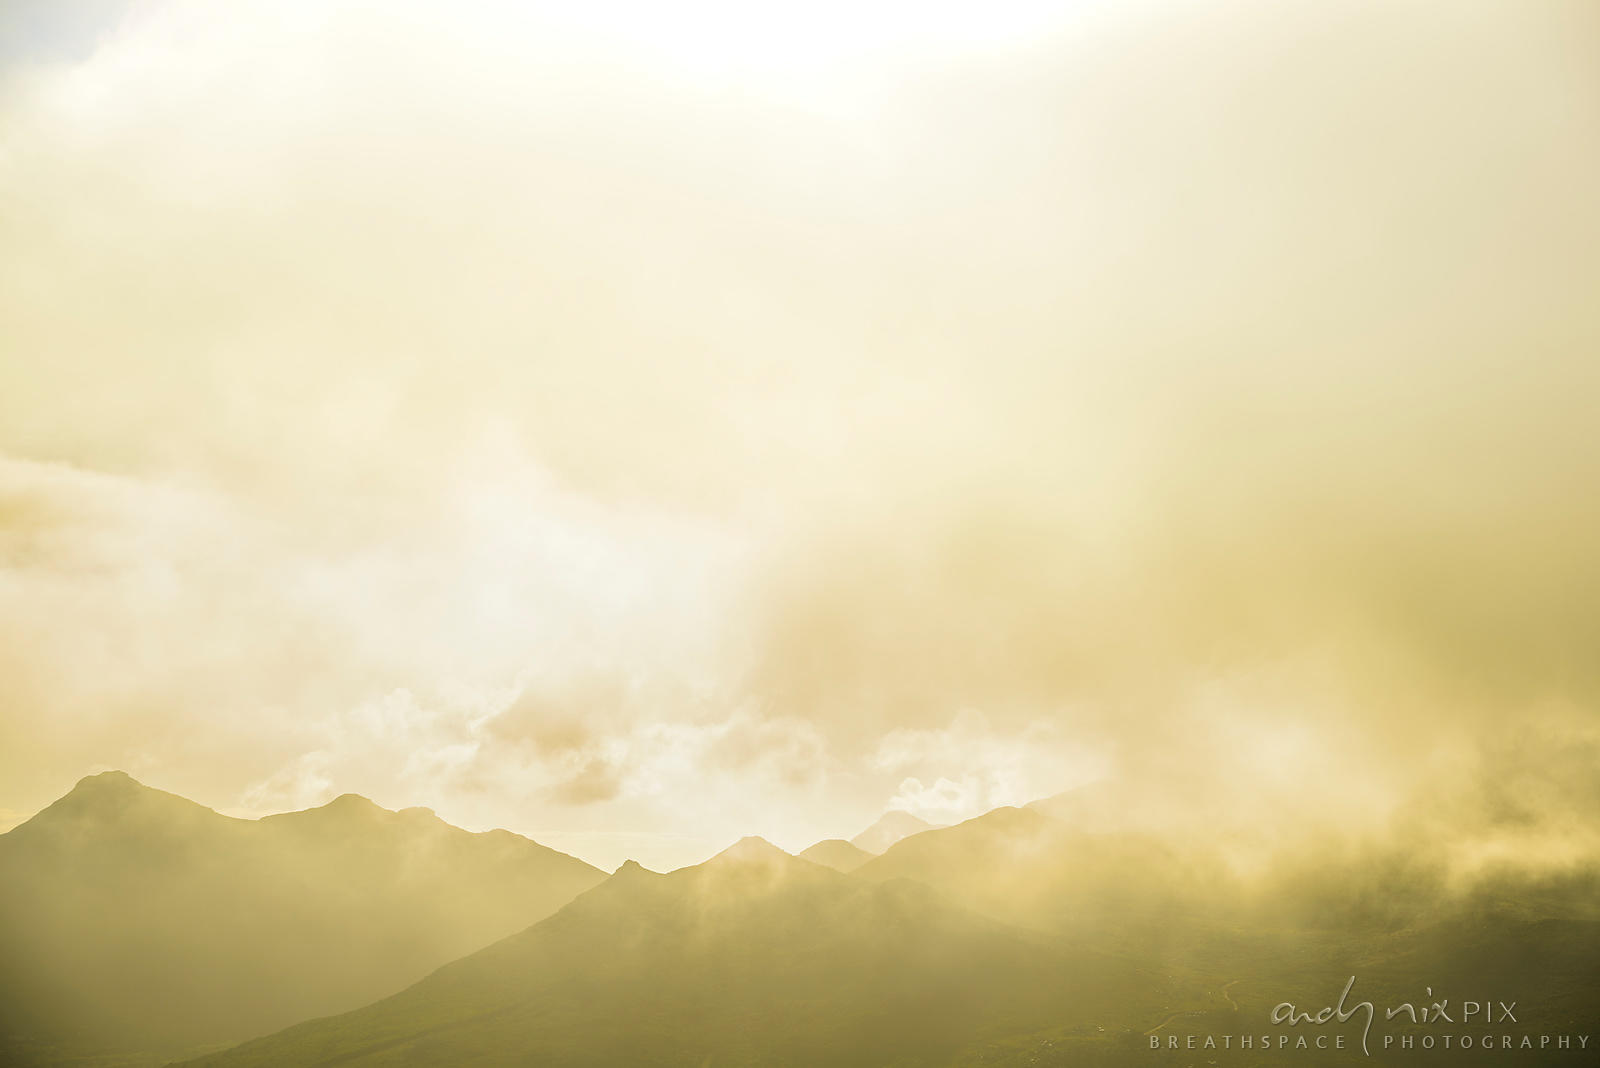 Soft sun light shining through blue tinged mist clouds rising above a silhouetted mountain range.